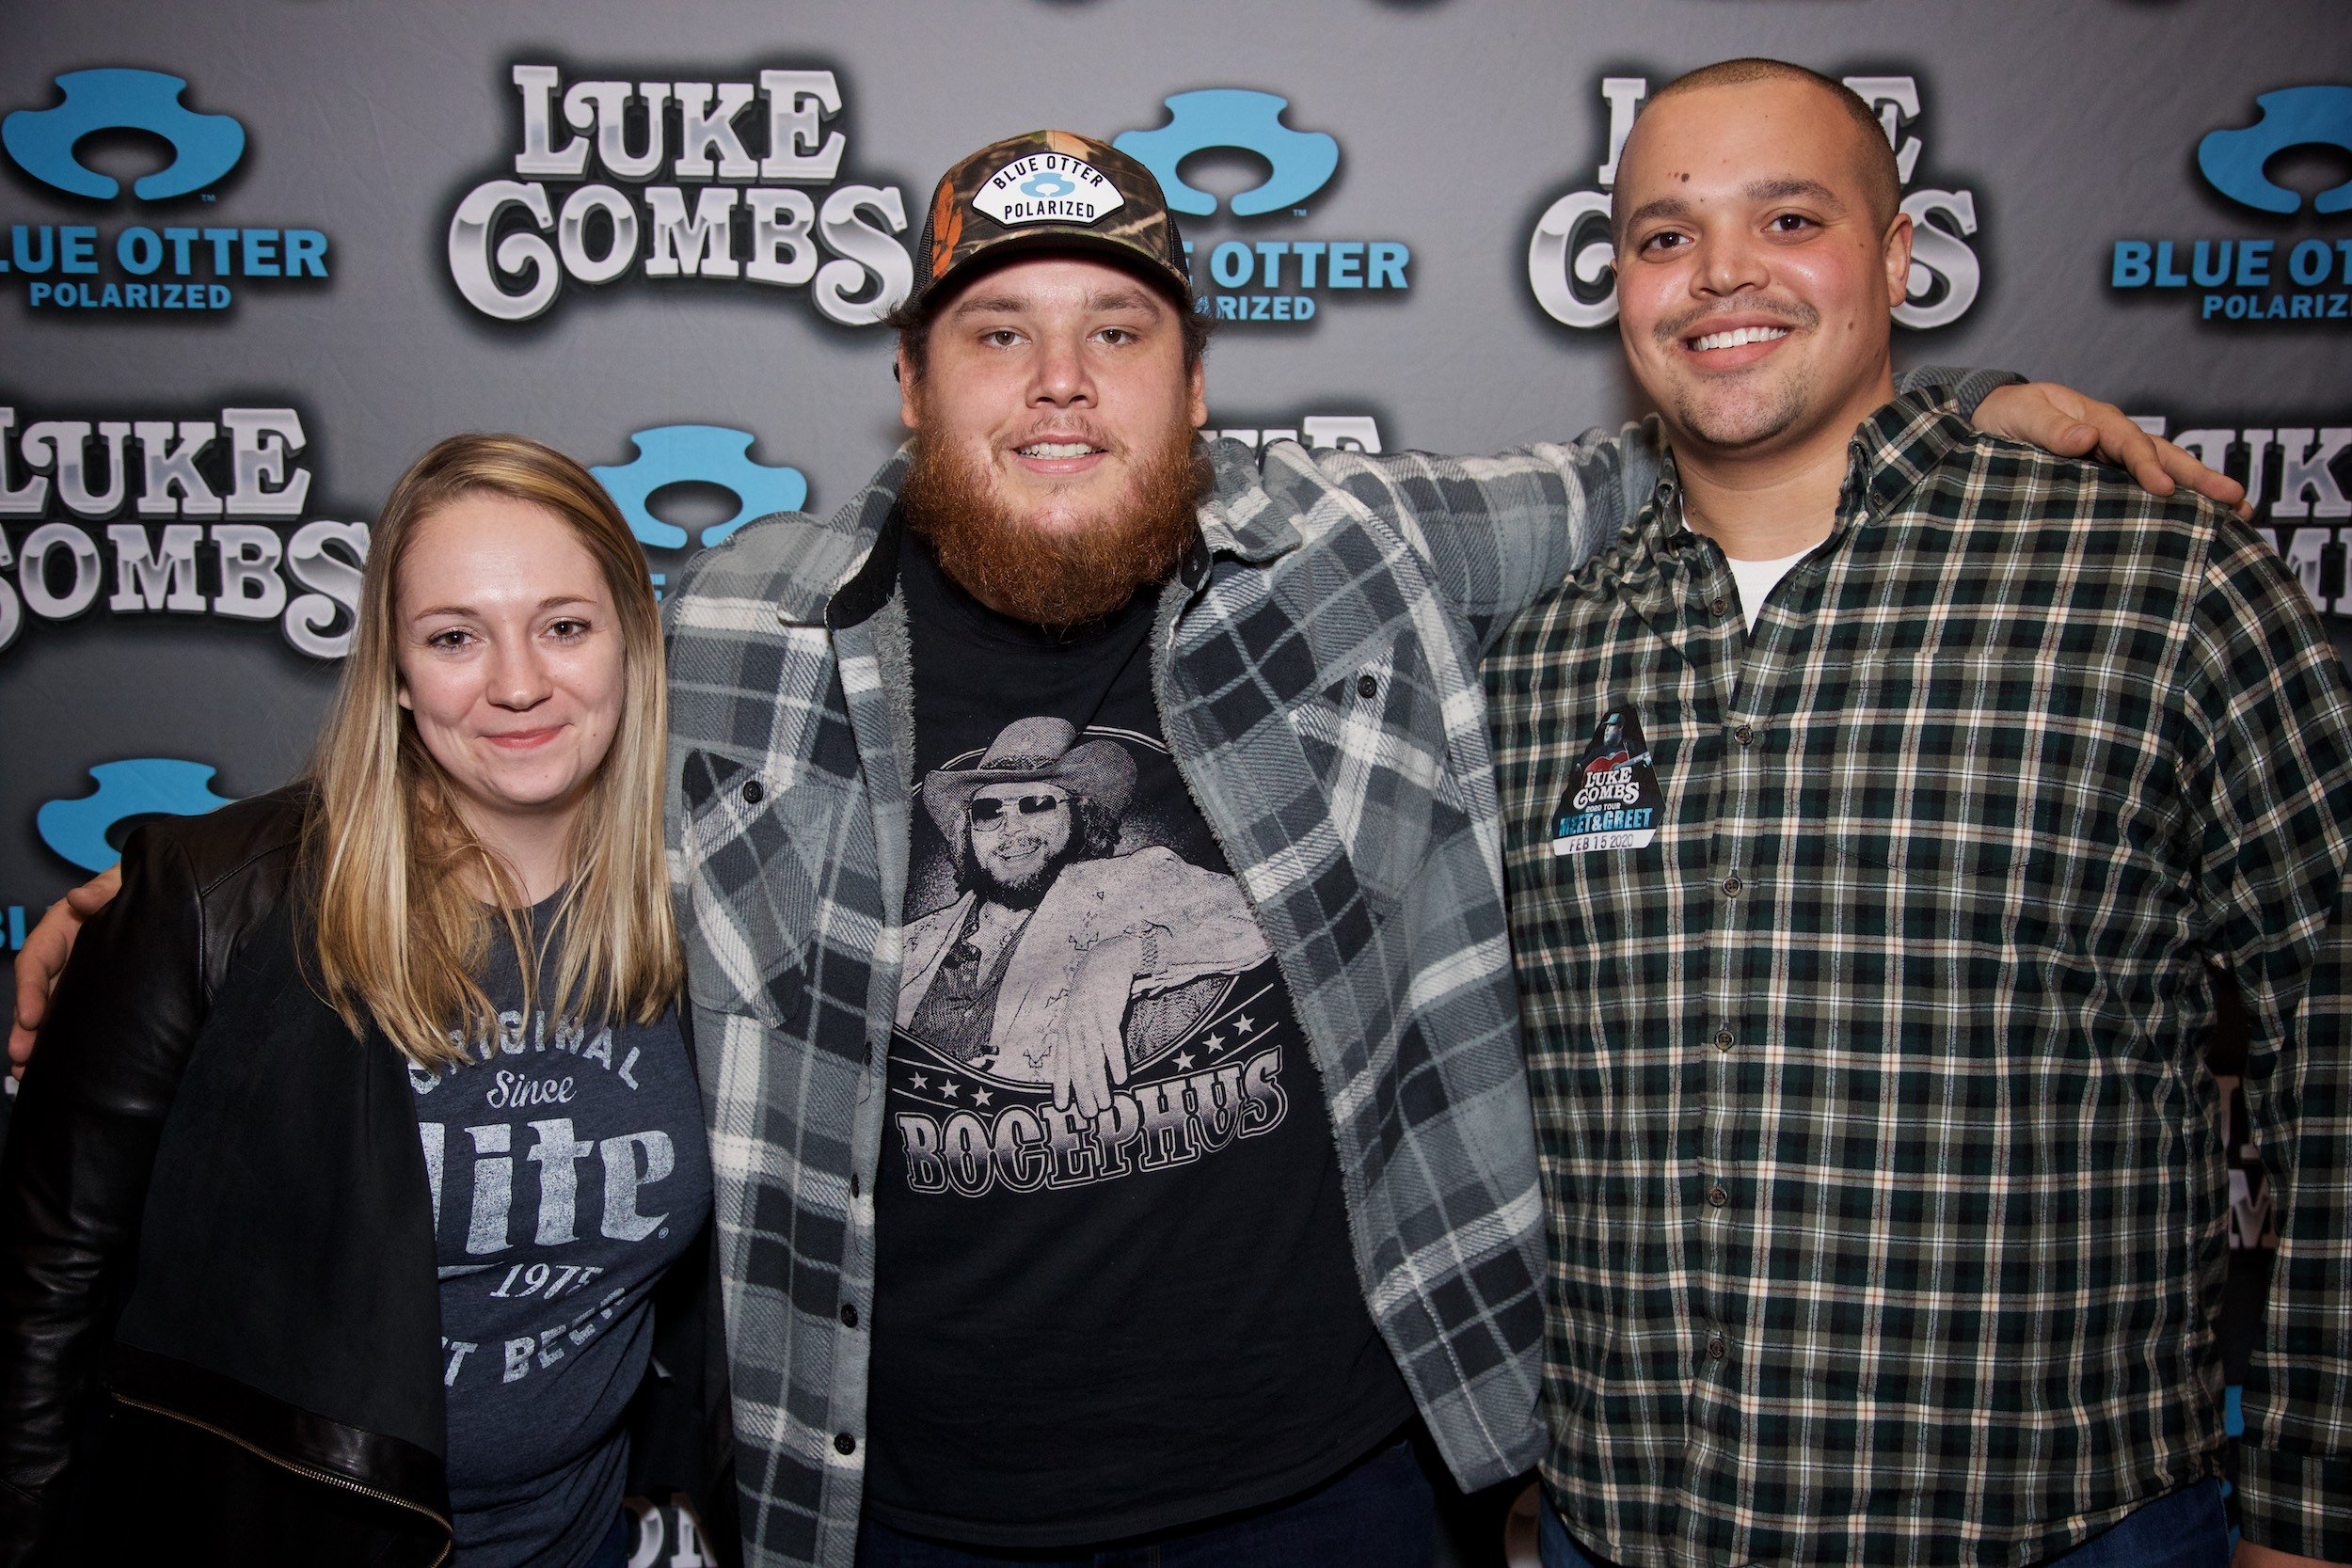 20200215_Luke_Combs_Grand_Rapids_0223